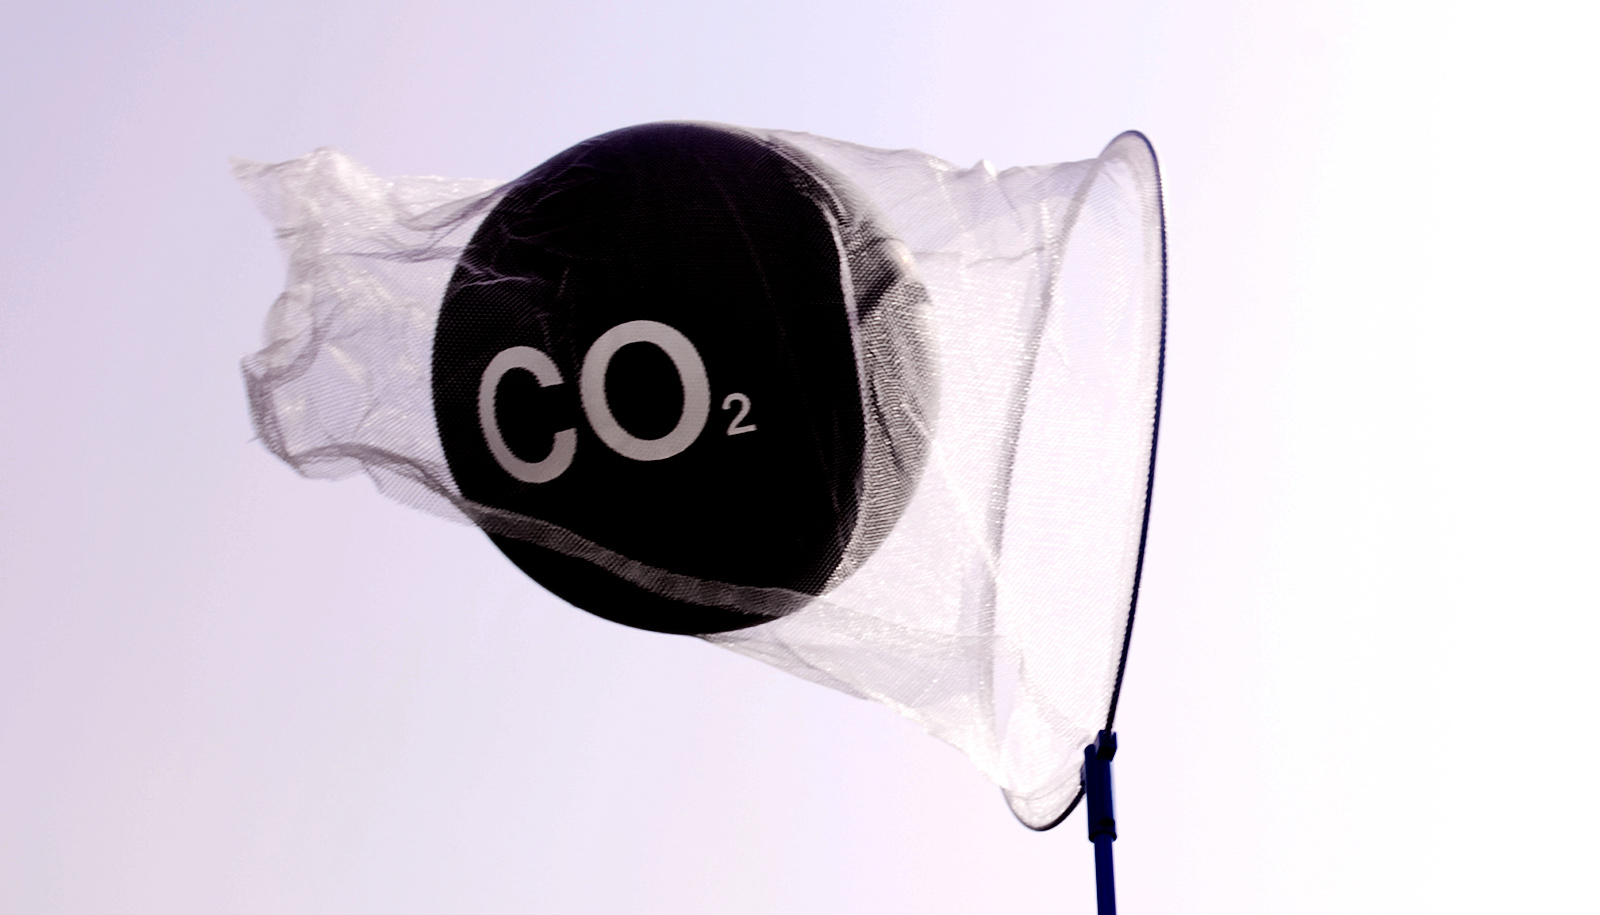 Carbon capture might not be such a great idea